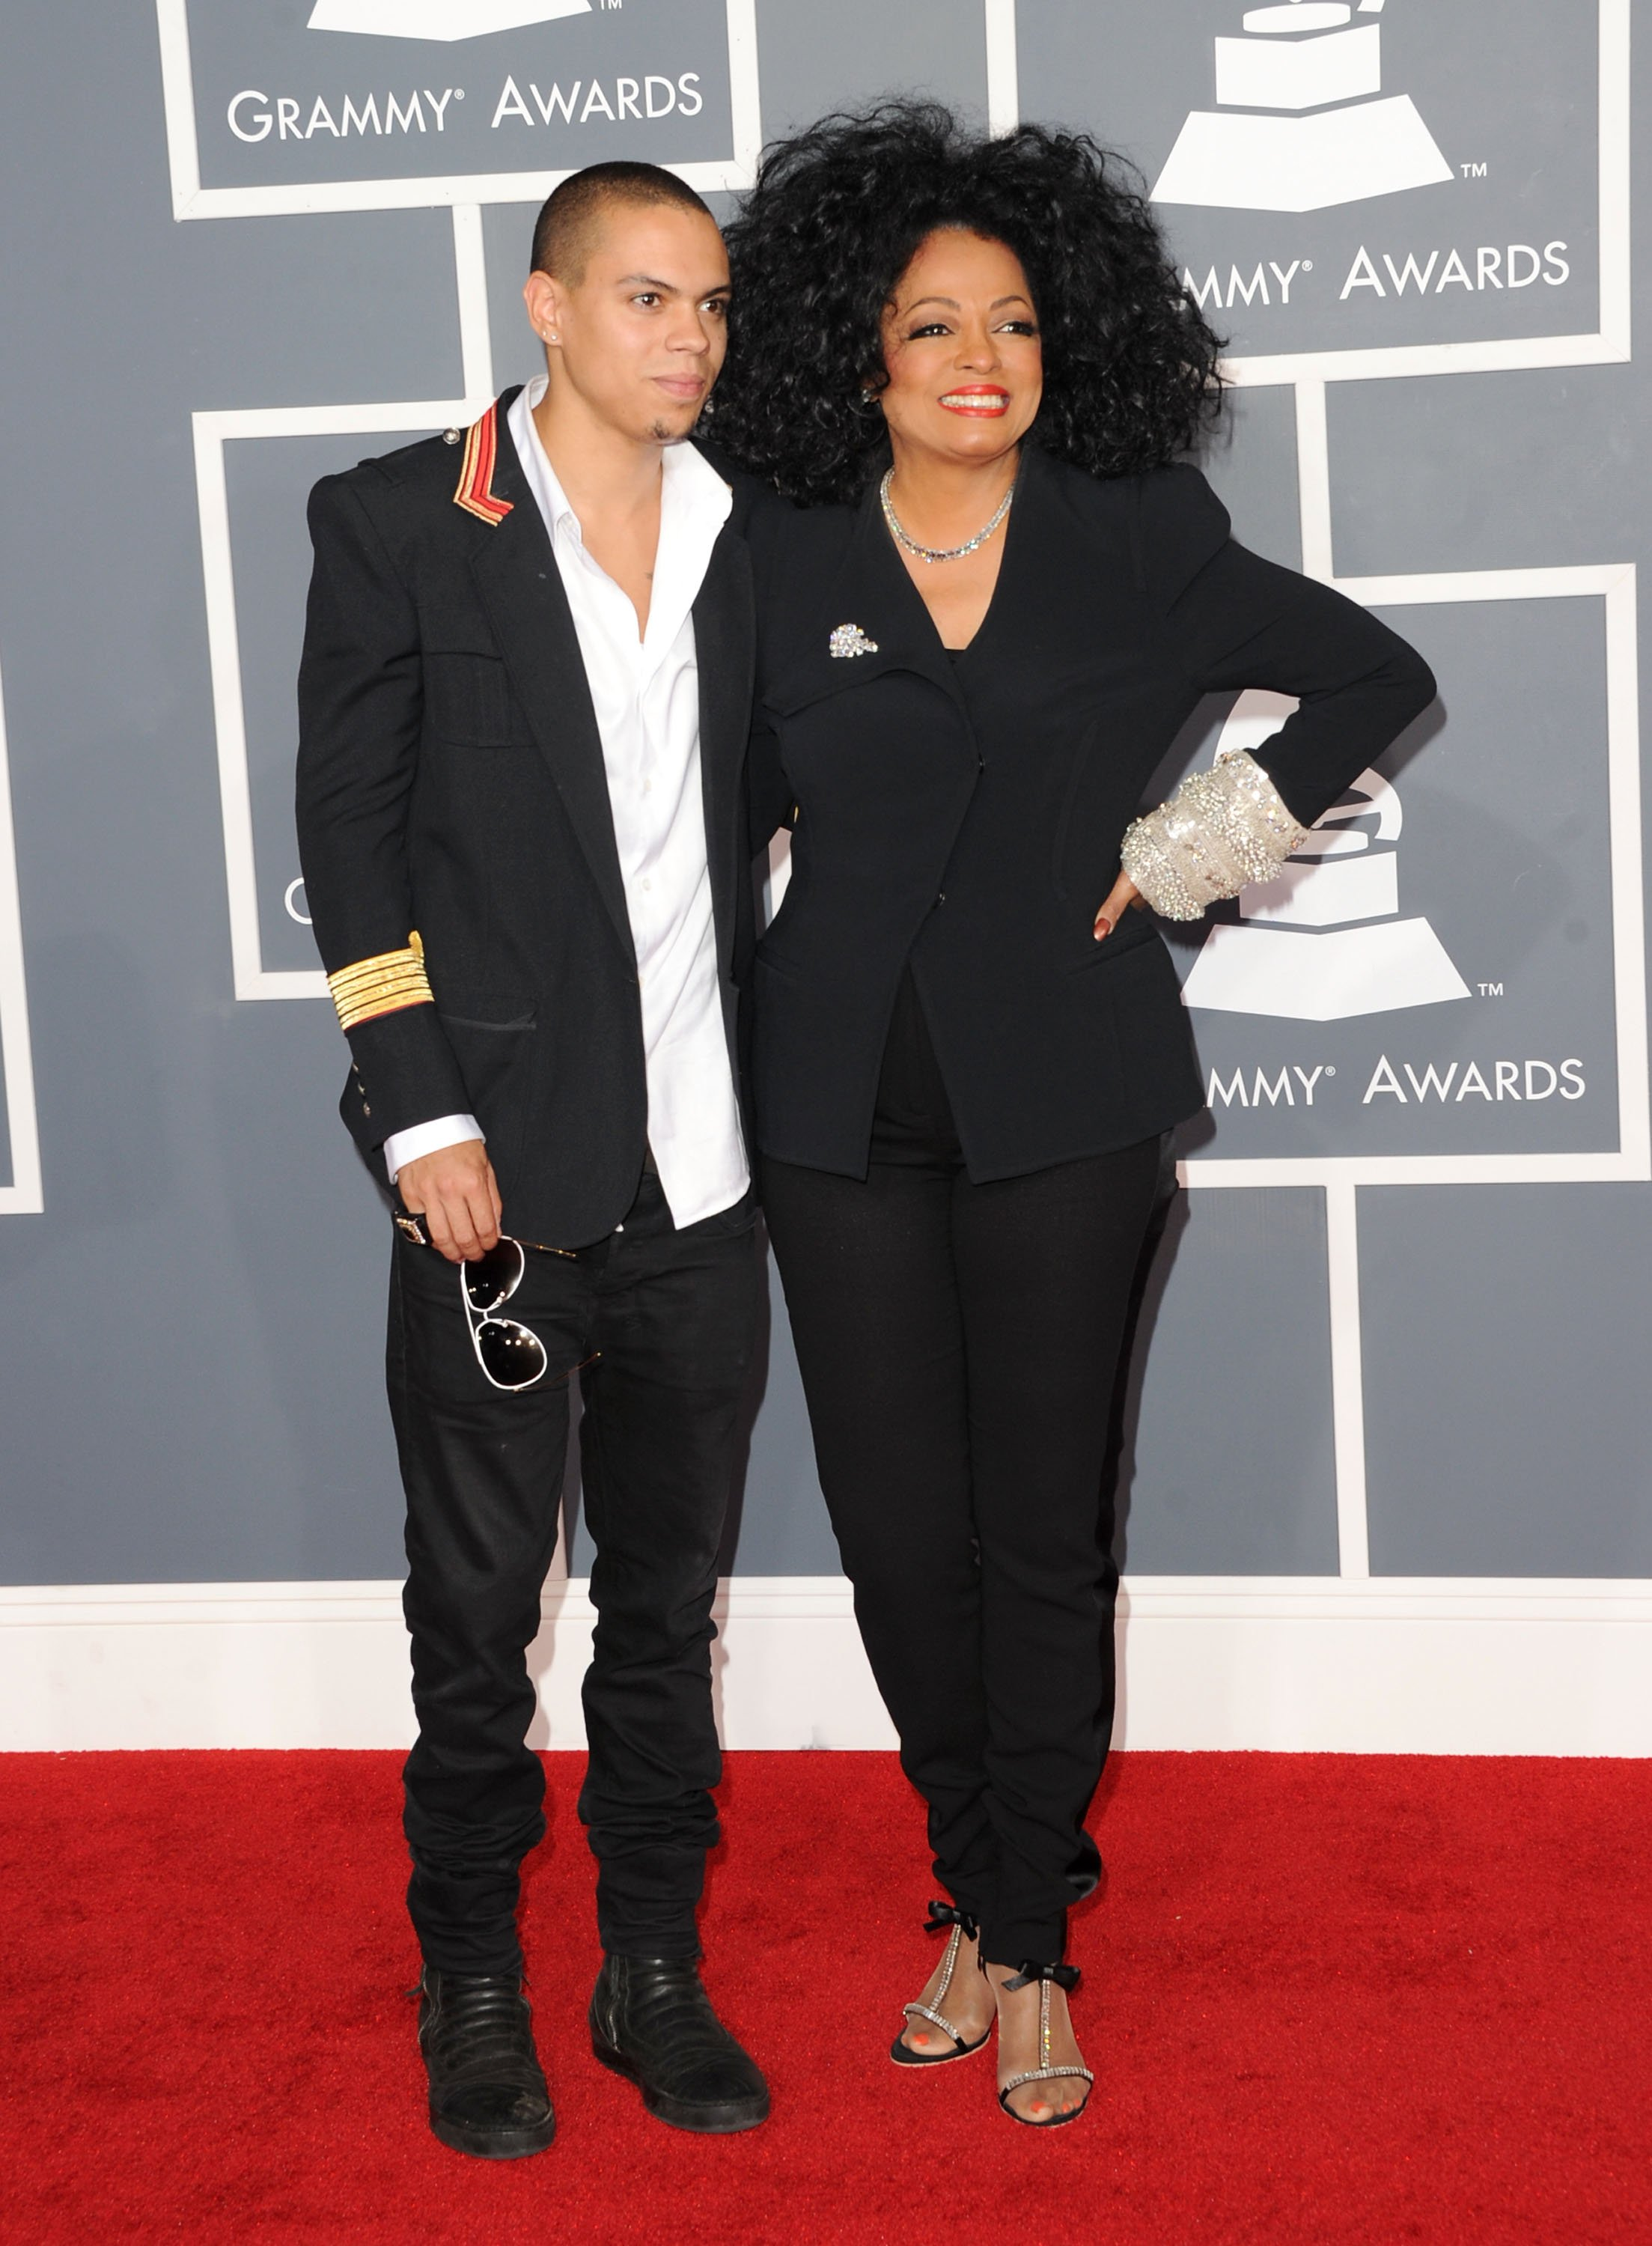 Diana Ross (R) and son Evan Ross at the 54th Annual GRAMMY Awards held at Staples Center on February 12, 2012 in Los Angeles, California. | Source: Getty